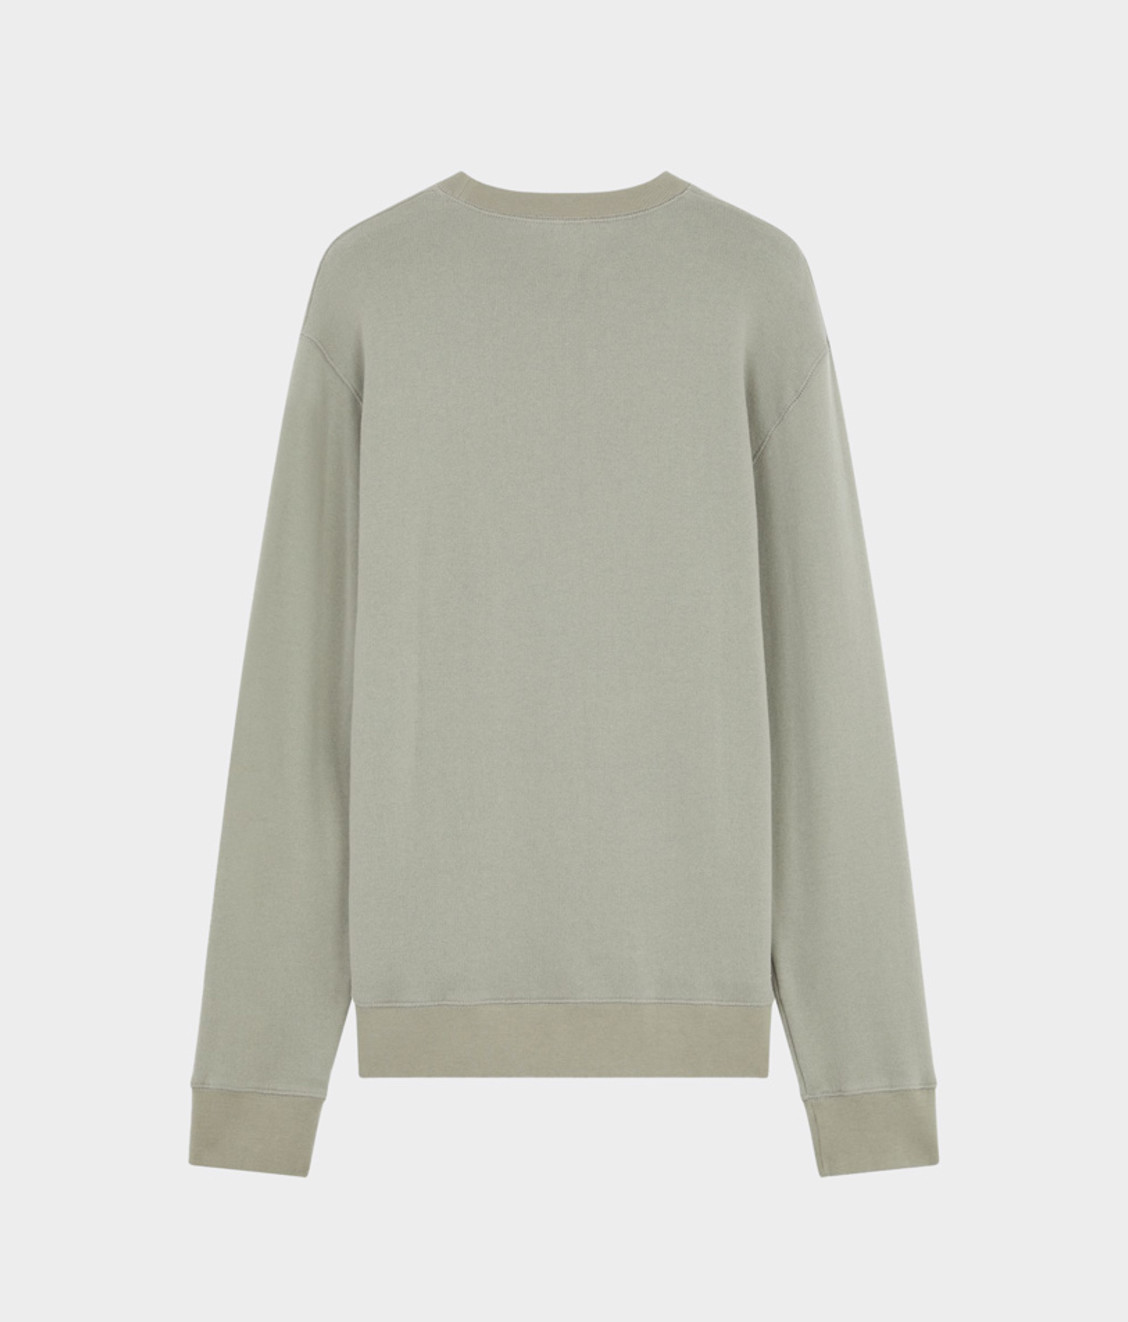 Maison Kitsune Maison Kitsune Regular Fit Sweatshirt Light Grey